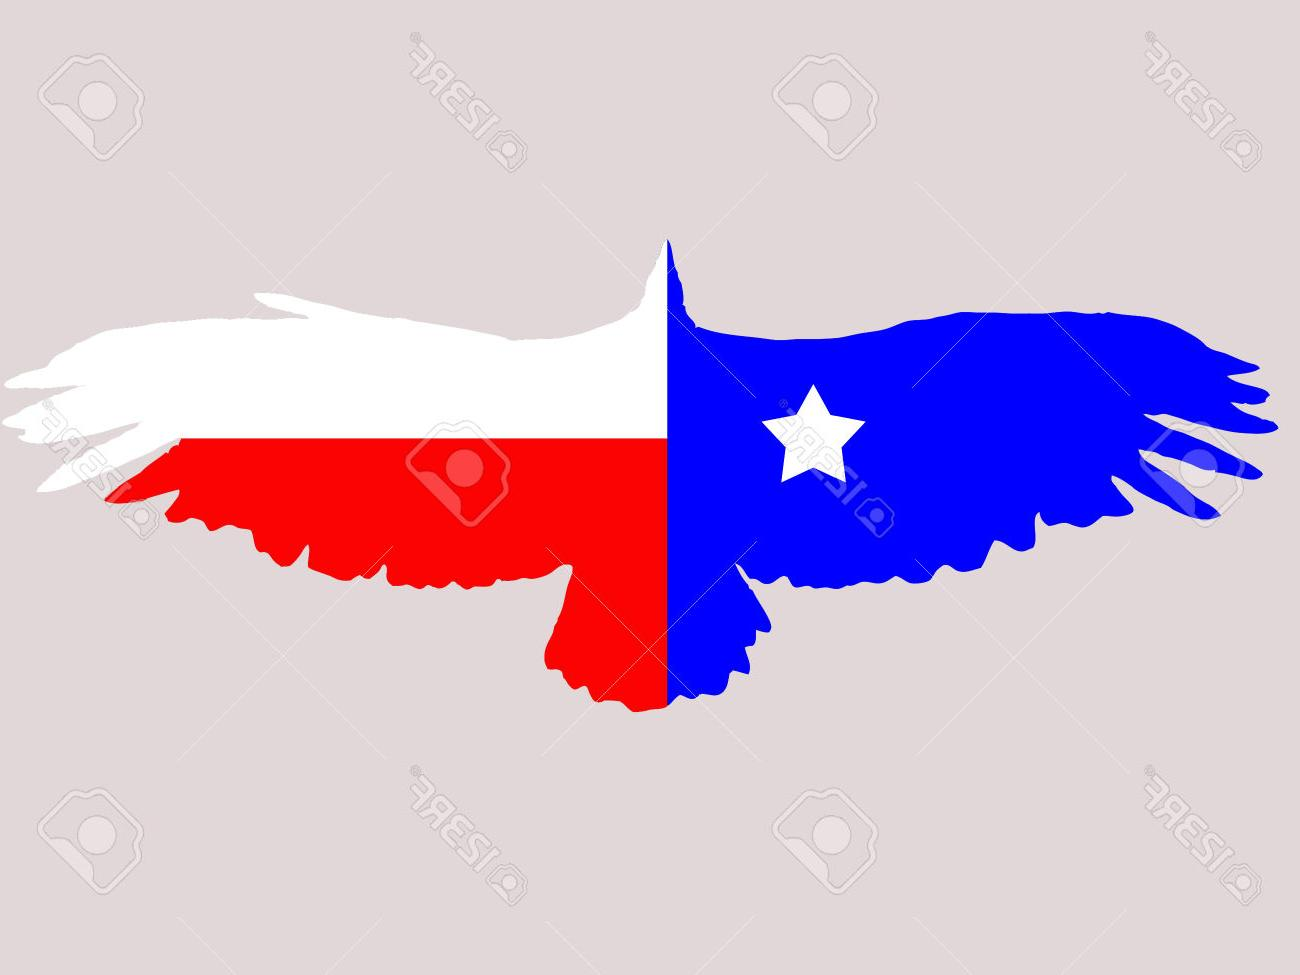 1300x975 Top 10 Illustration Of Abstract Texas Flag In Eagles Shape Stock